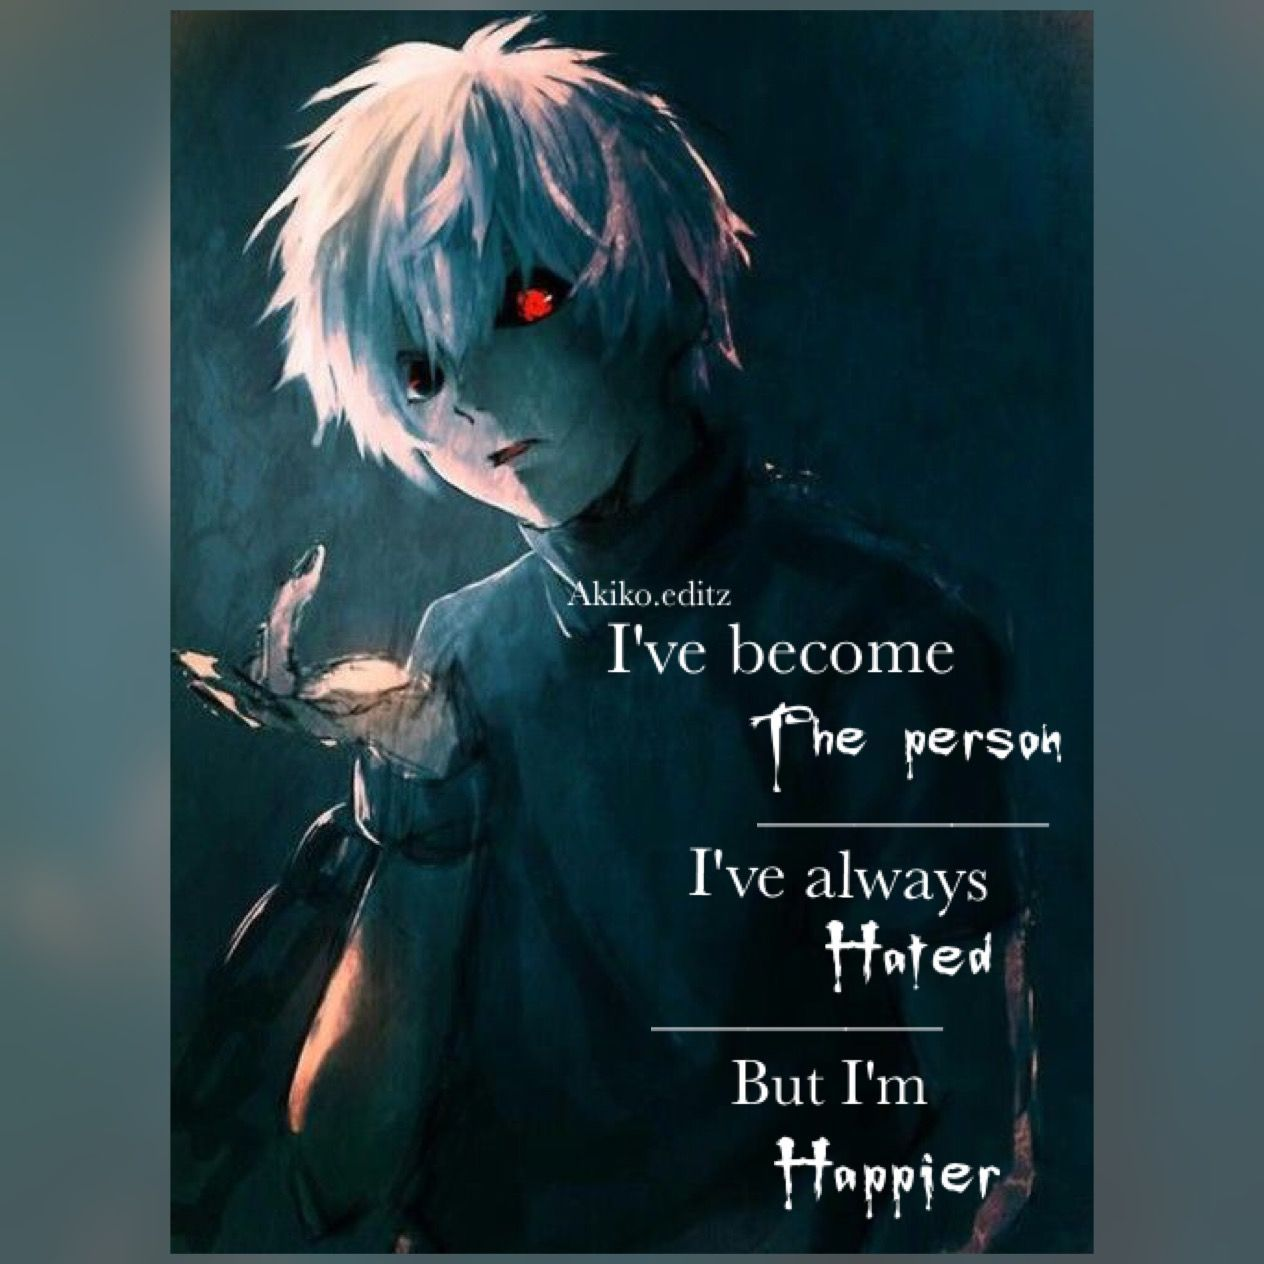 Best Quotes Wallpaper 4k Anime | Quotes and Wallpaper Q